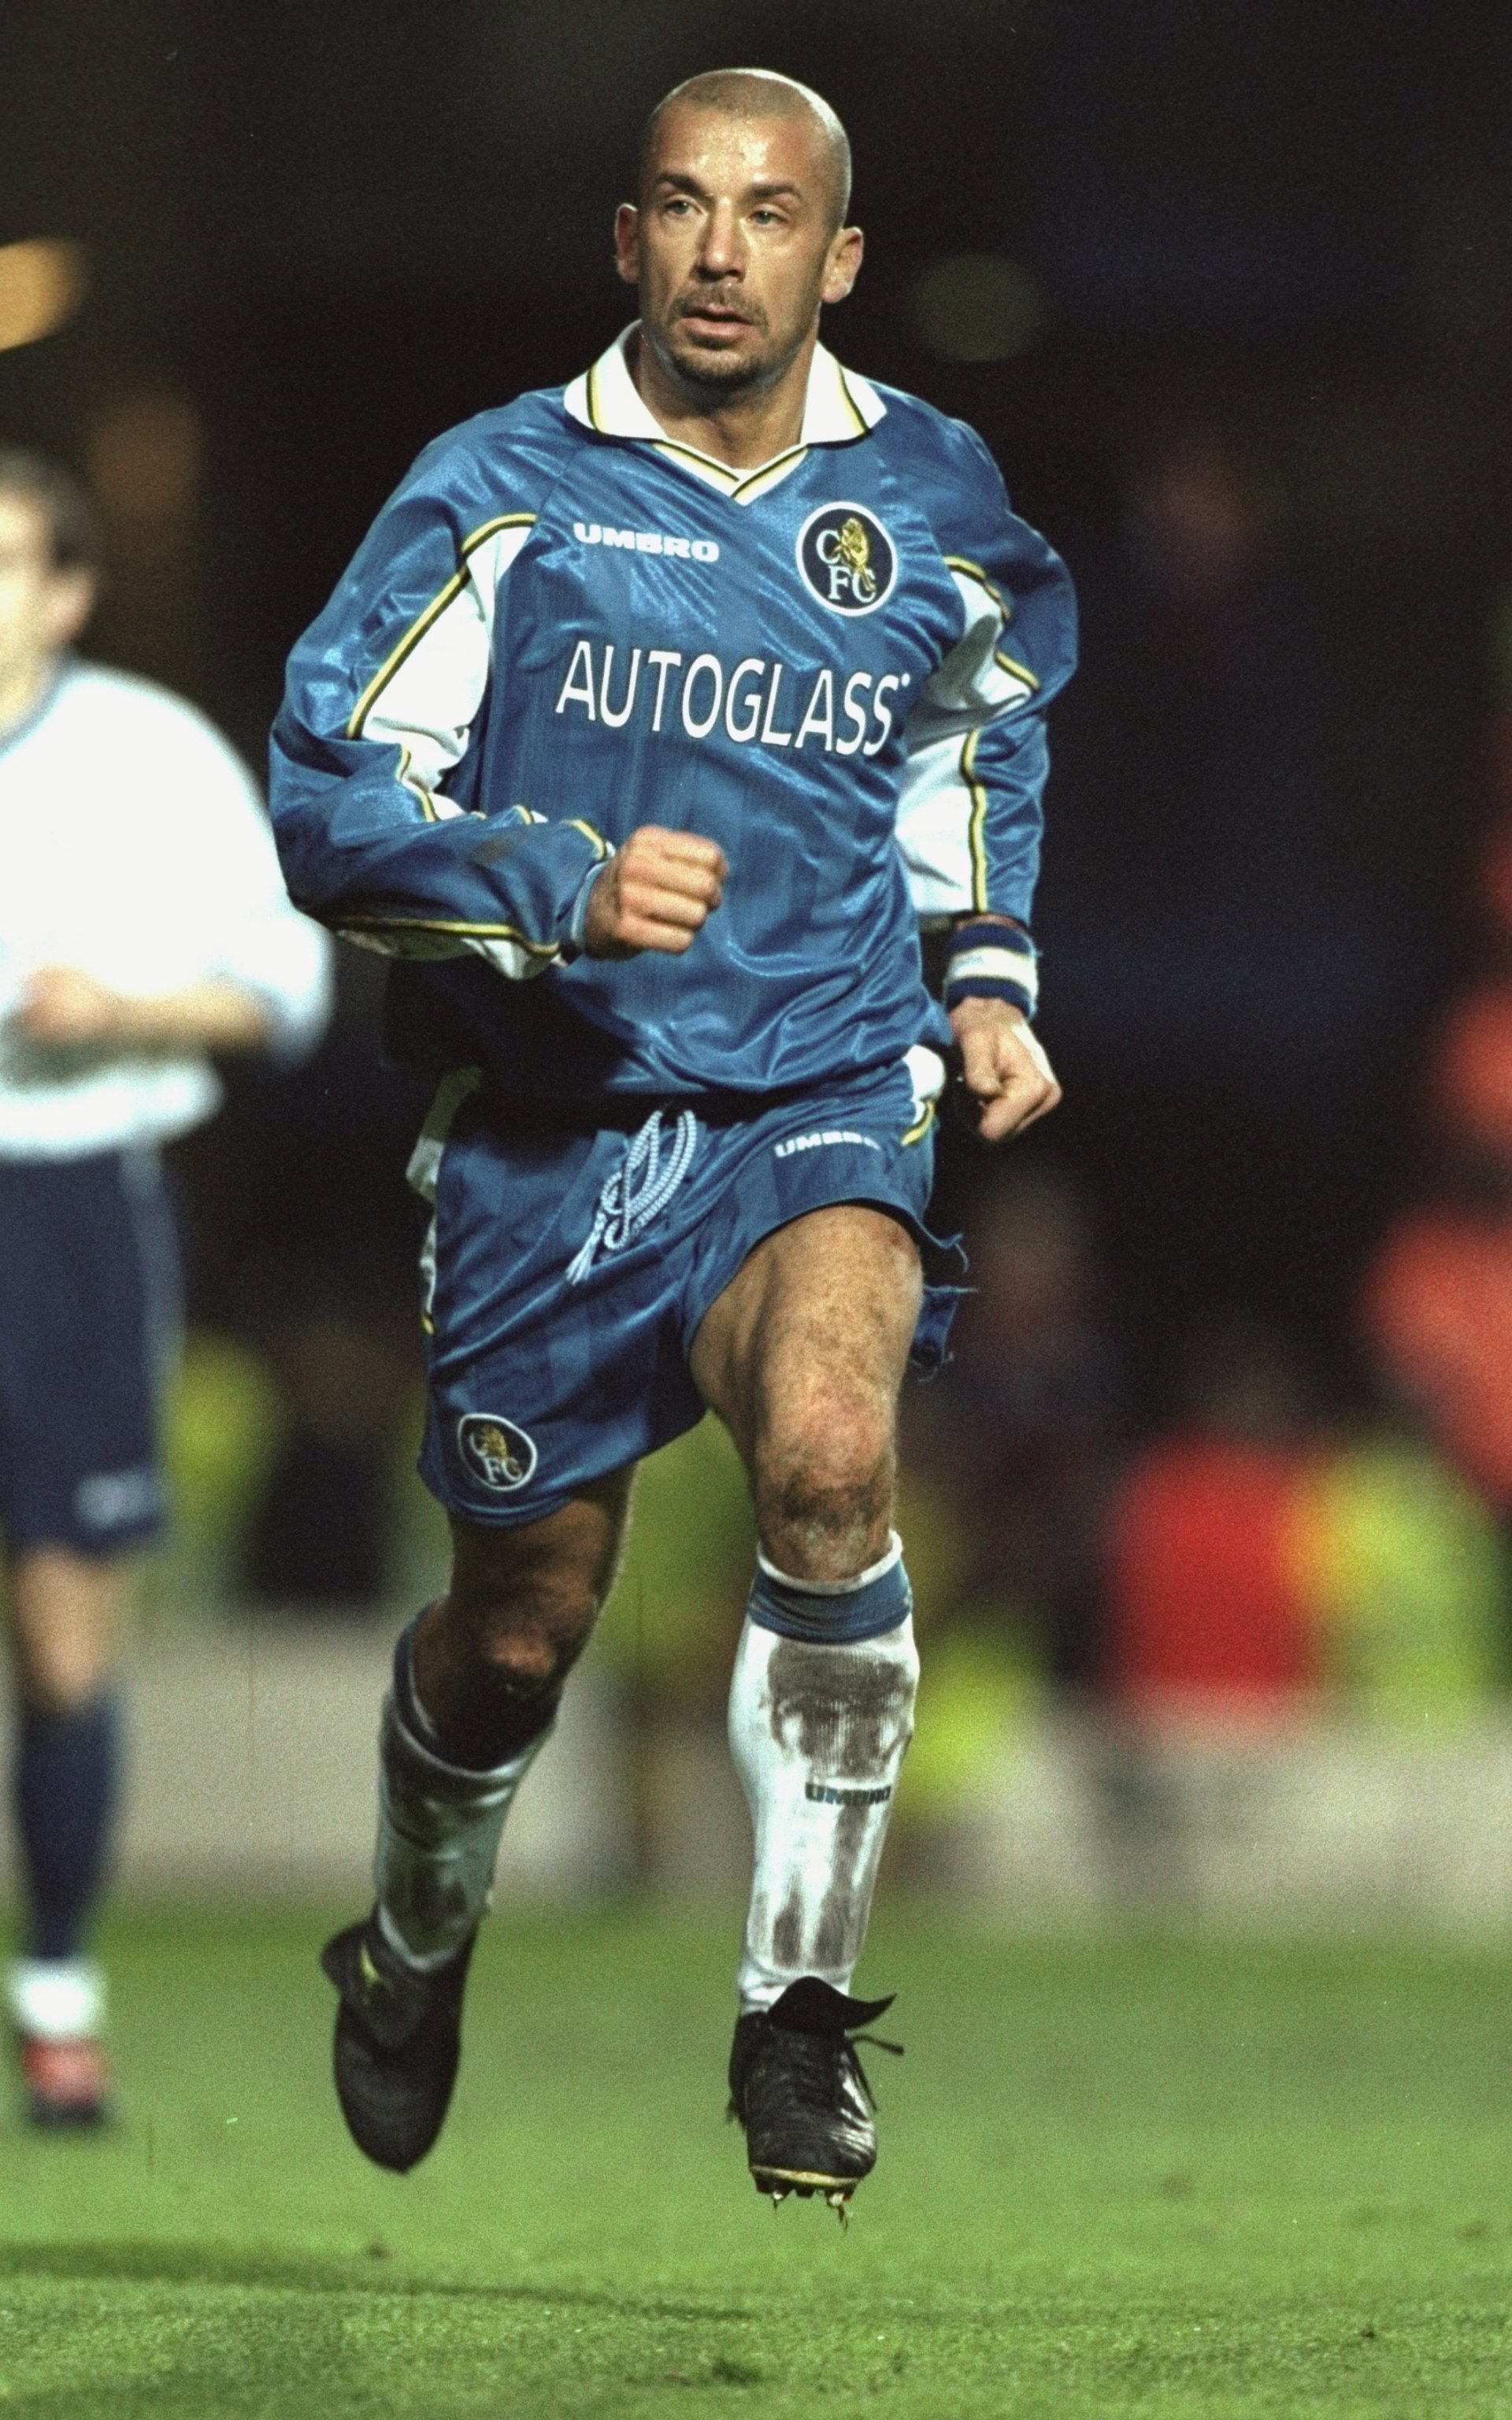 19 Dec 1998:  Gianluca Vialli of Chelsea in action during the FA Carling Premiership match against Tottenham Hotspur played at Stamford Bridge in London, England.  The match finished in a 2-0 win for Chelsea. \ Mandatory Credit: Allsport UK /Allsport